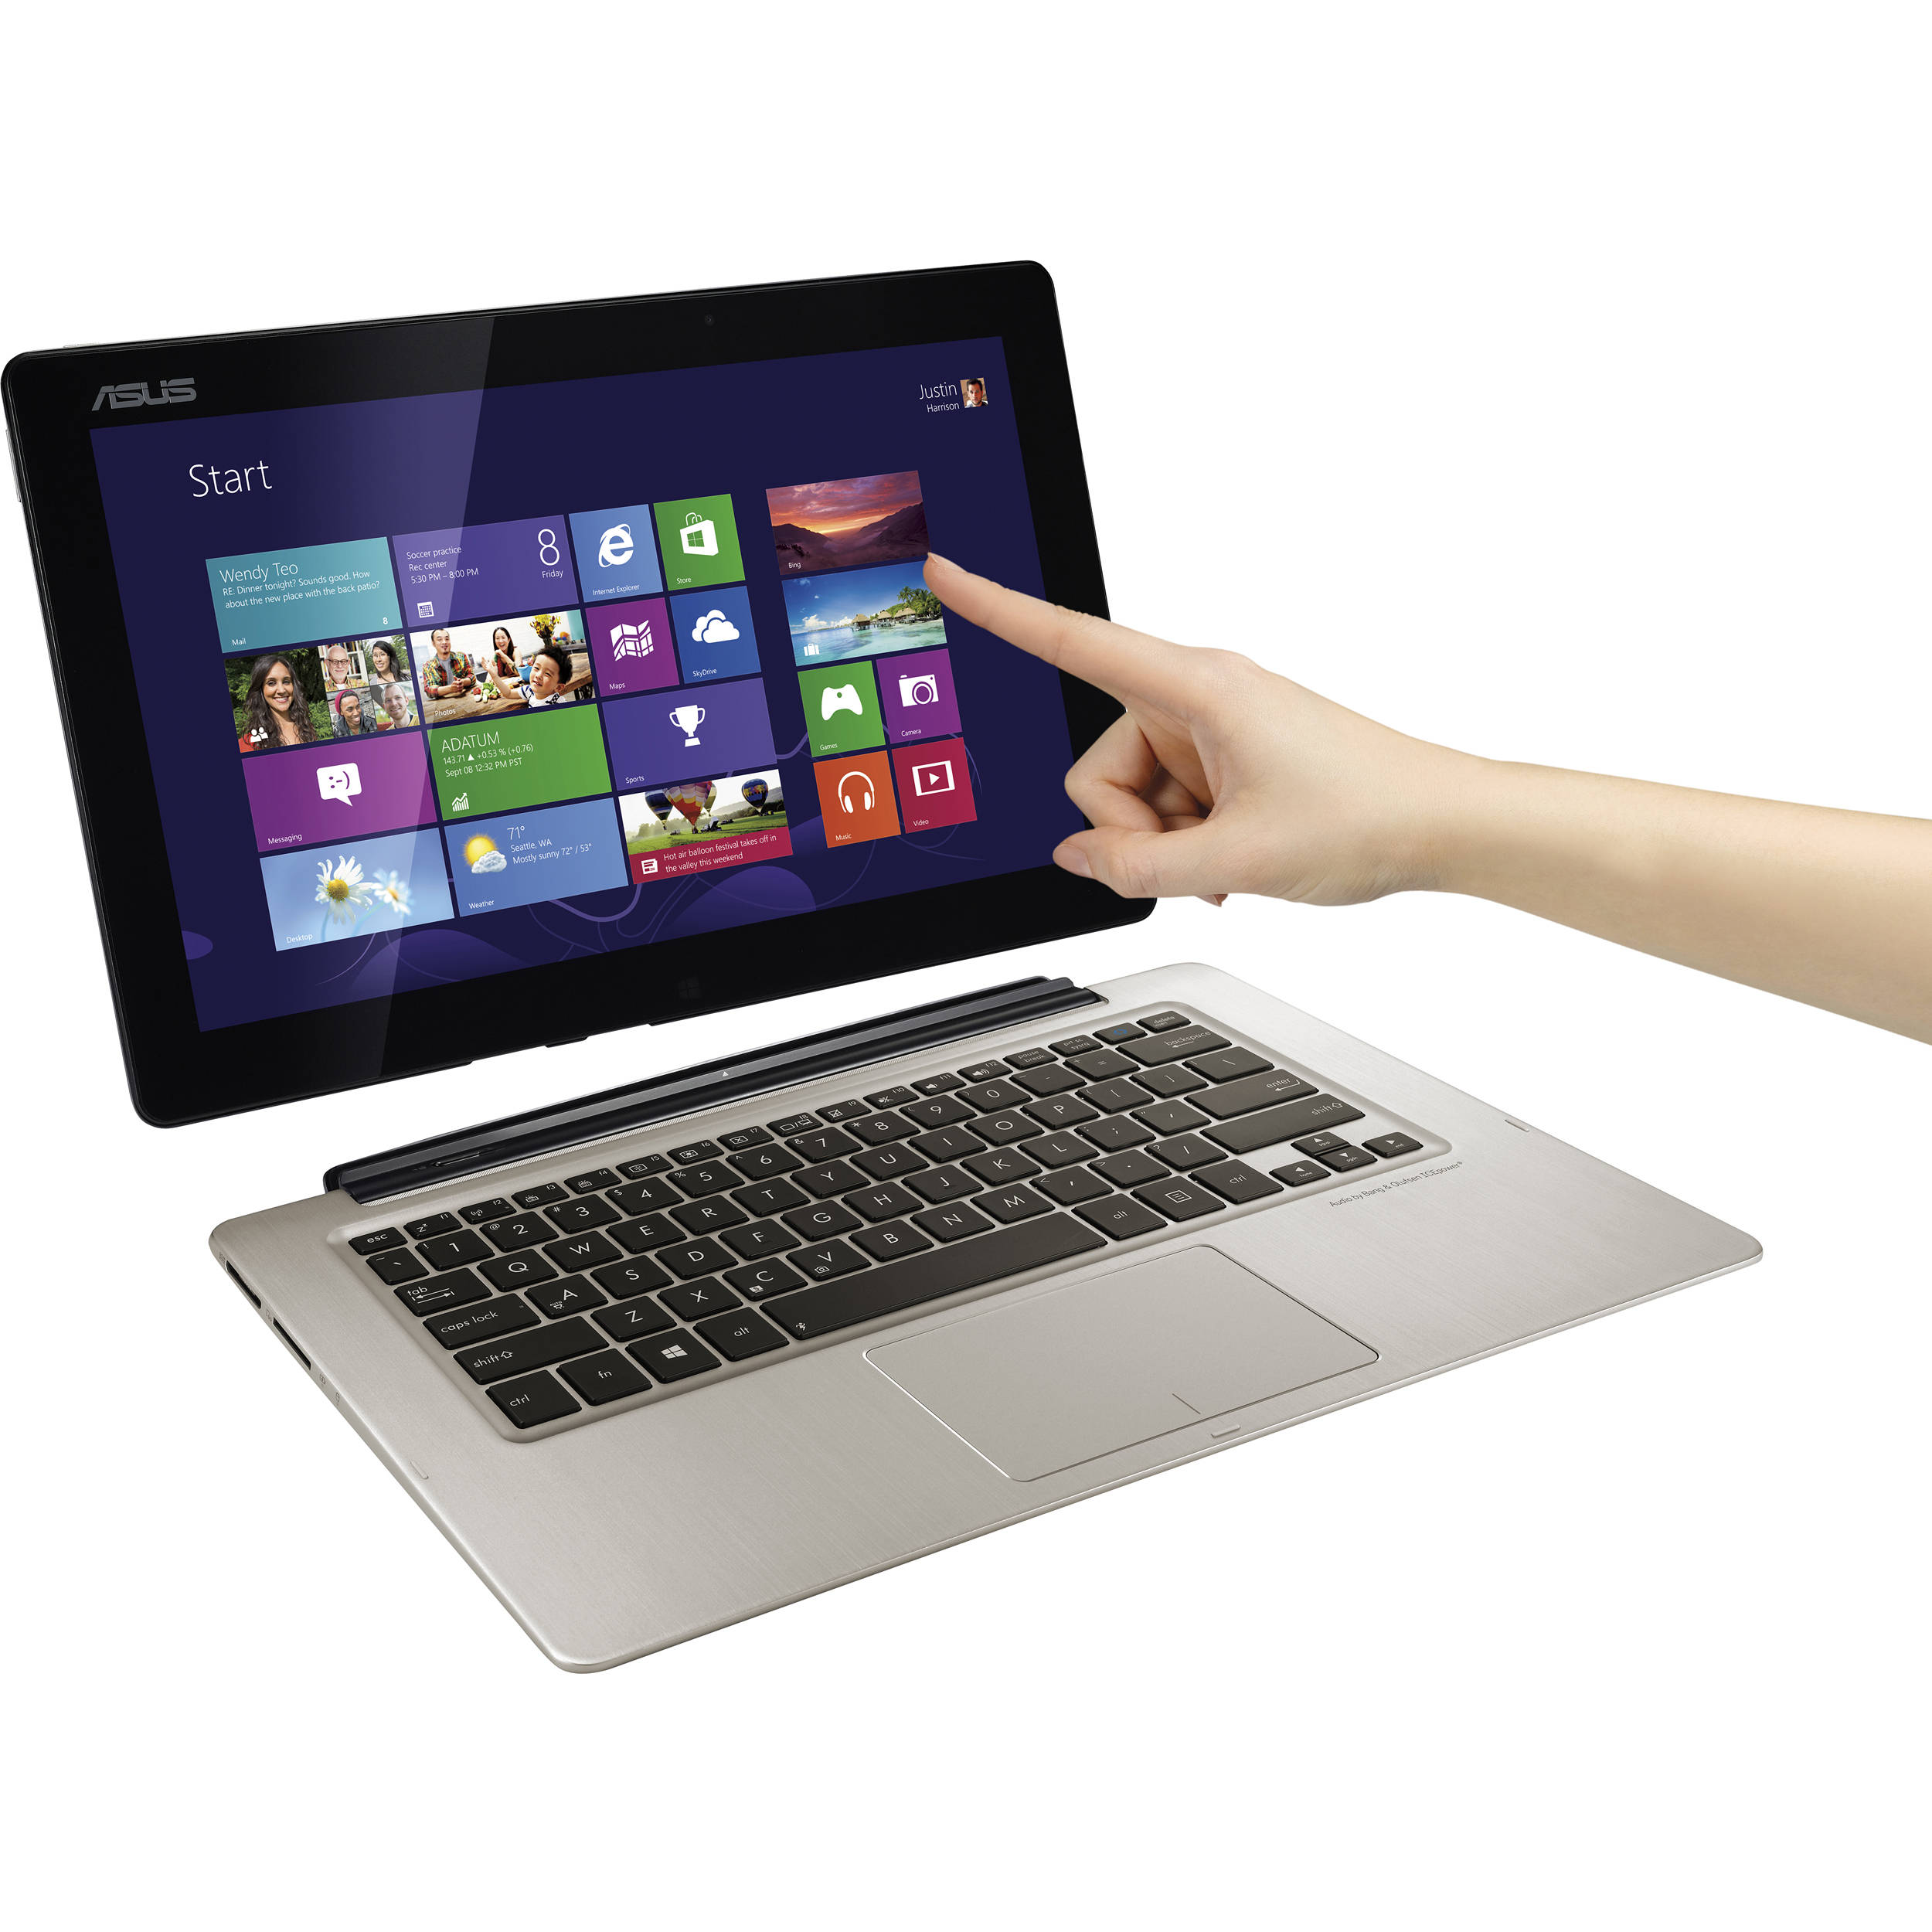 ASUS Transformer Book TX300 Smart Gesture Driver Download